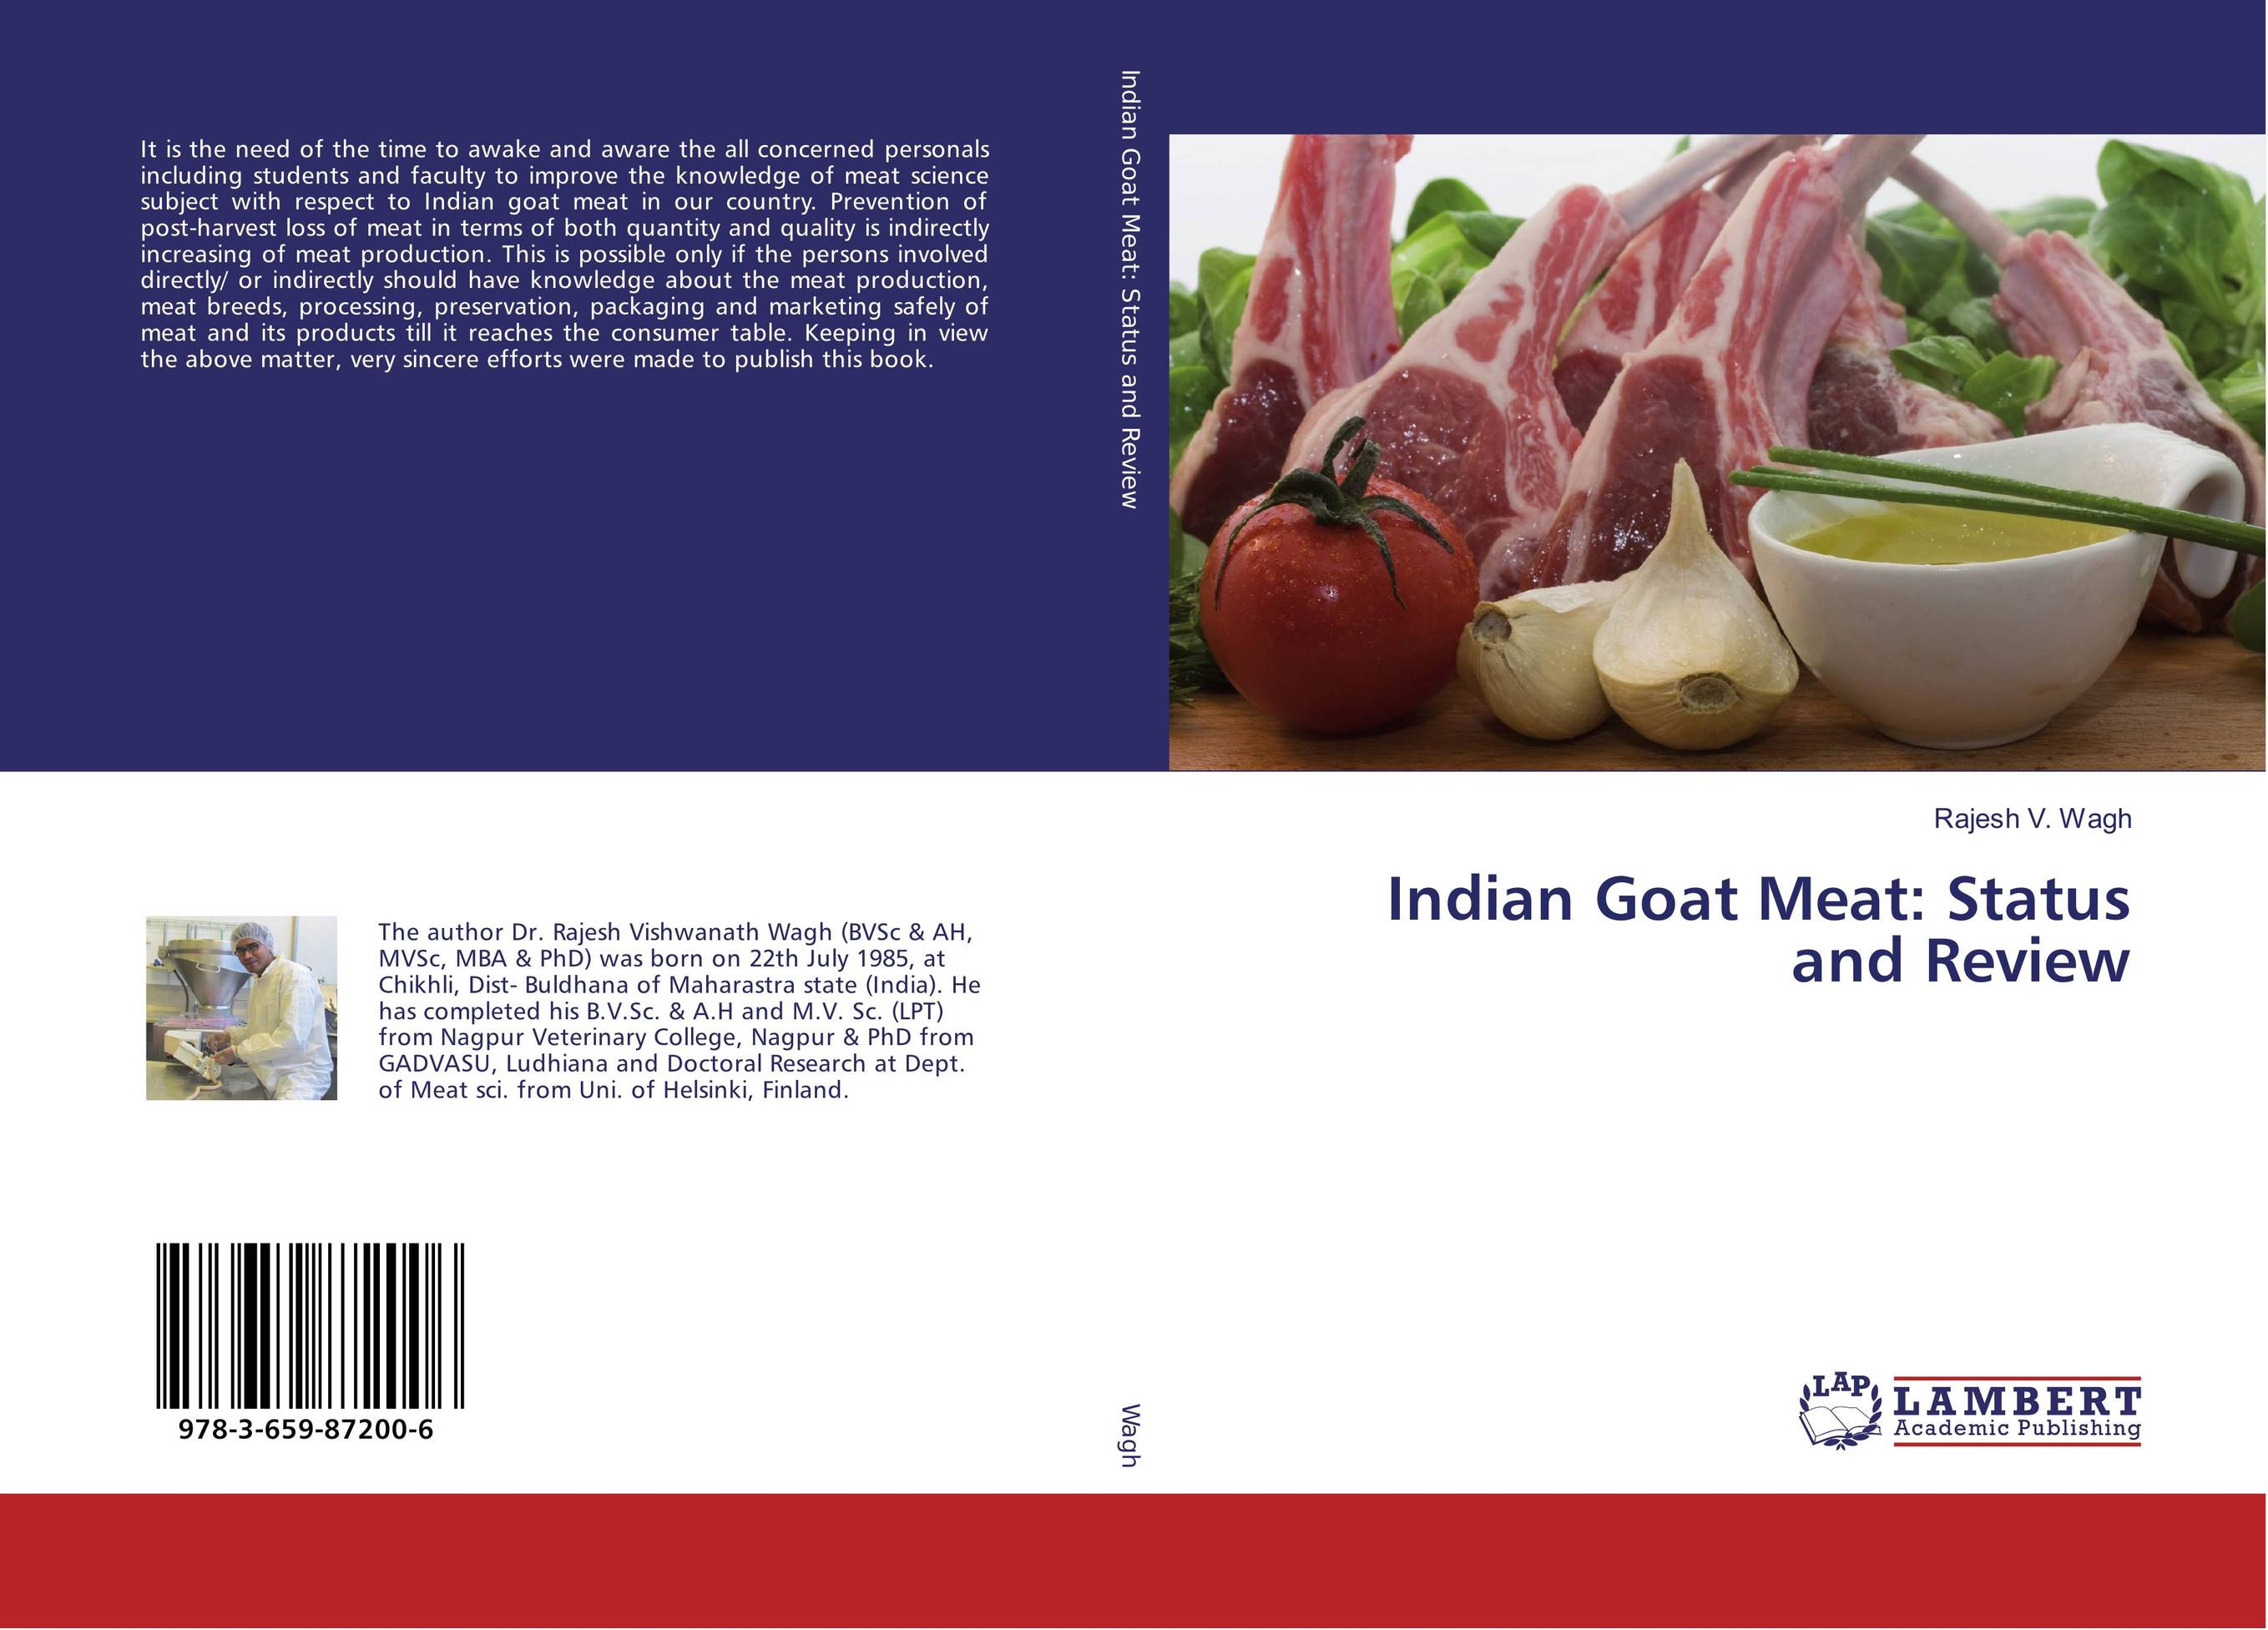 Indian Goat Meat: Status and Review